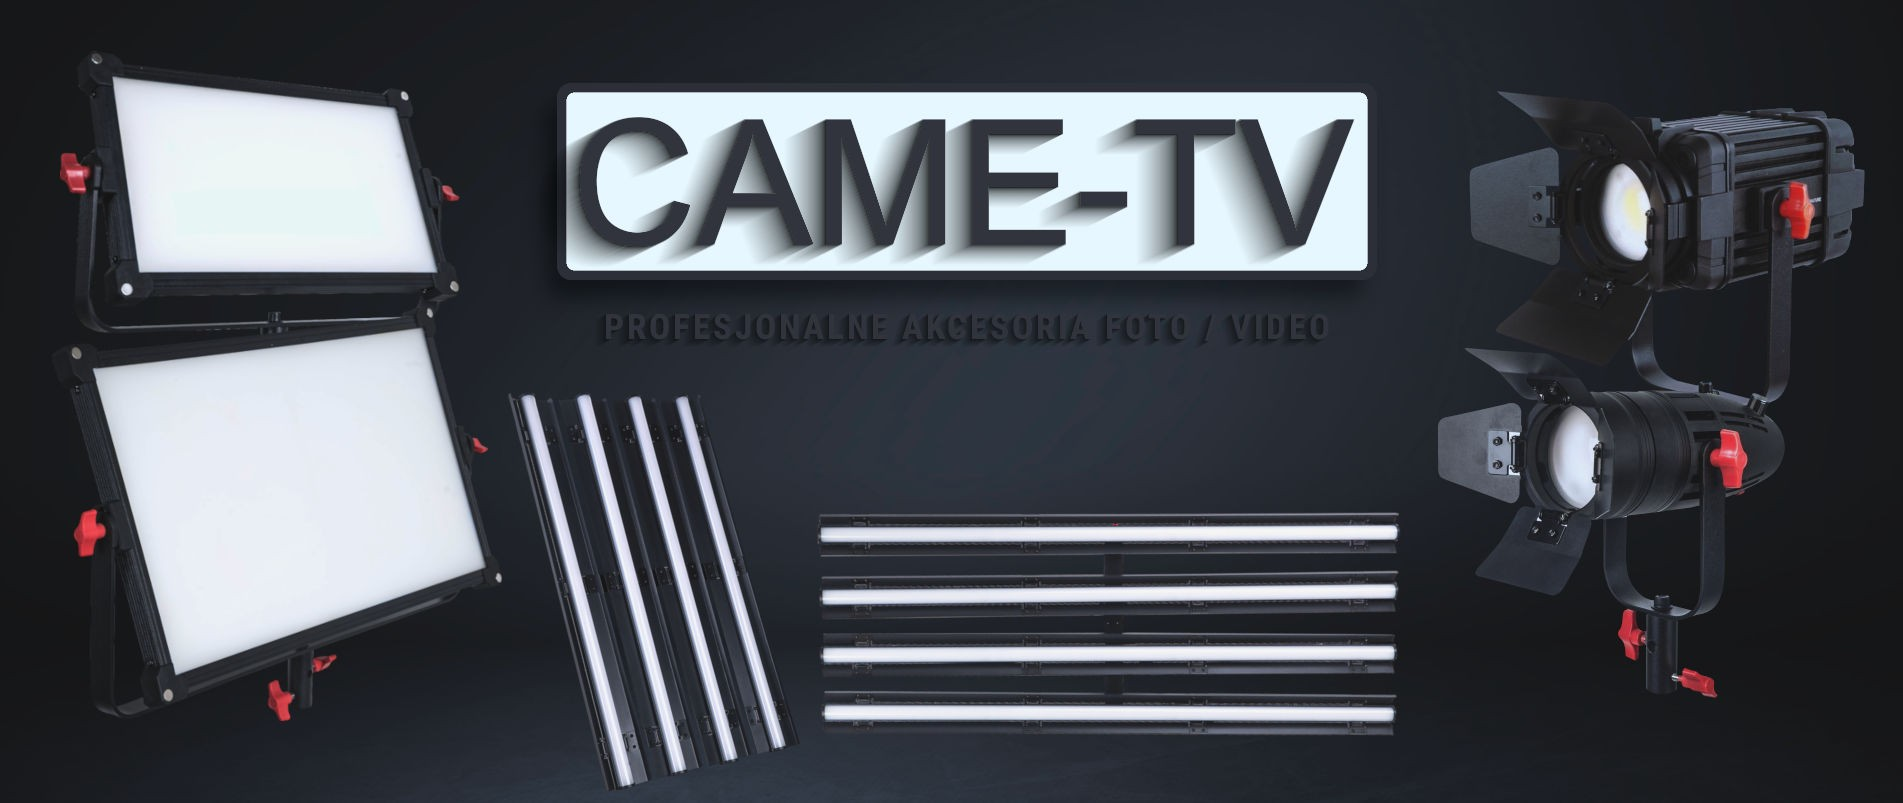 CAME-TV